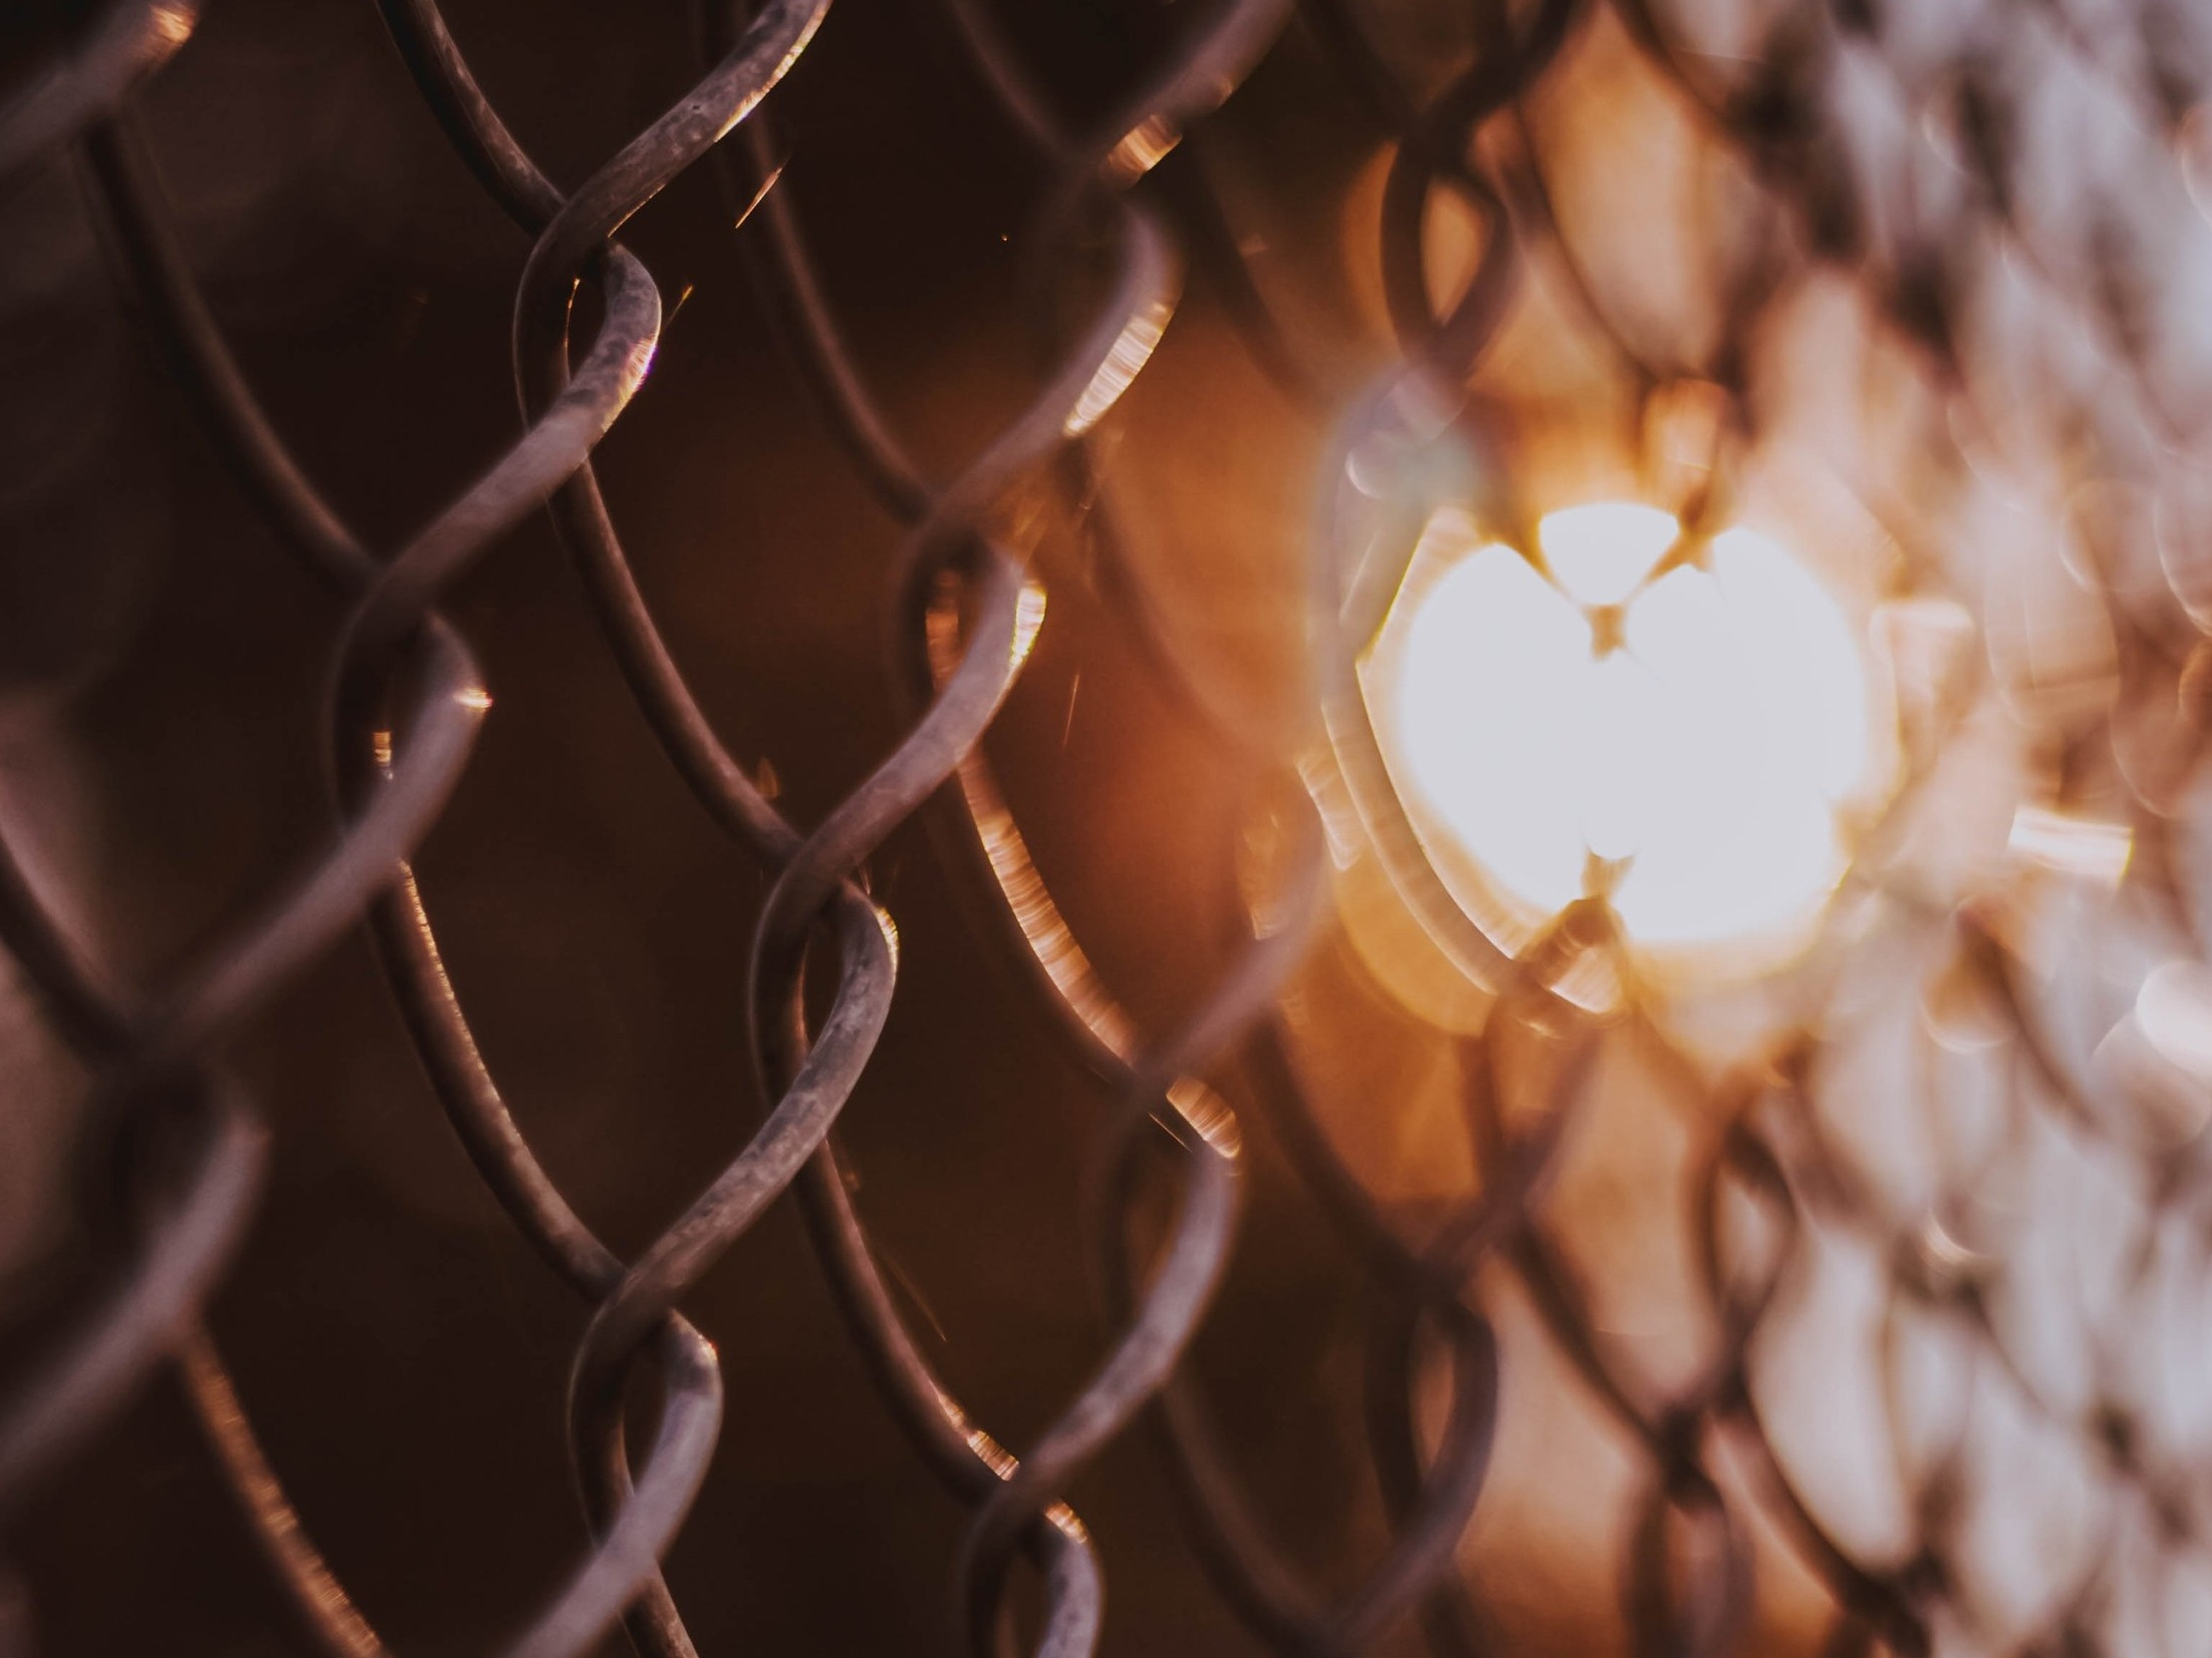 PhD Research Project: Immigration Detention - Overview of doctoral research concerning volunteer and asylum seeker experiences in Australian immigration detention facilities.